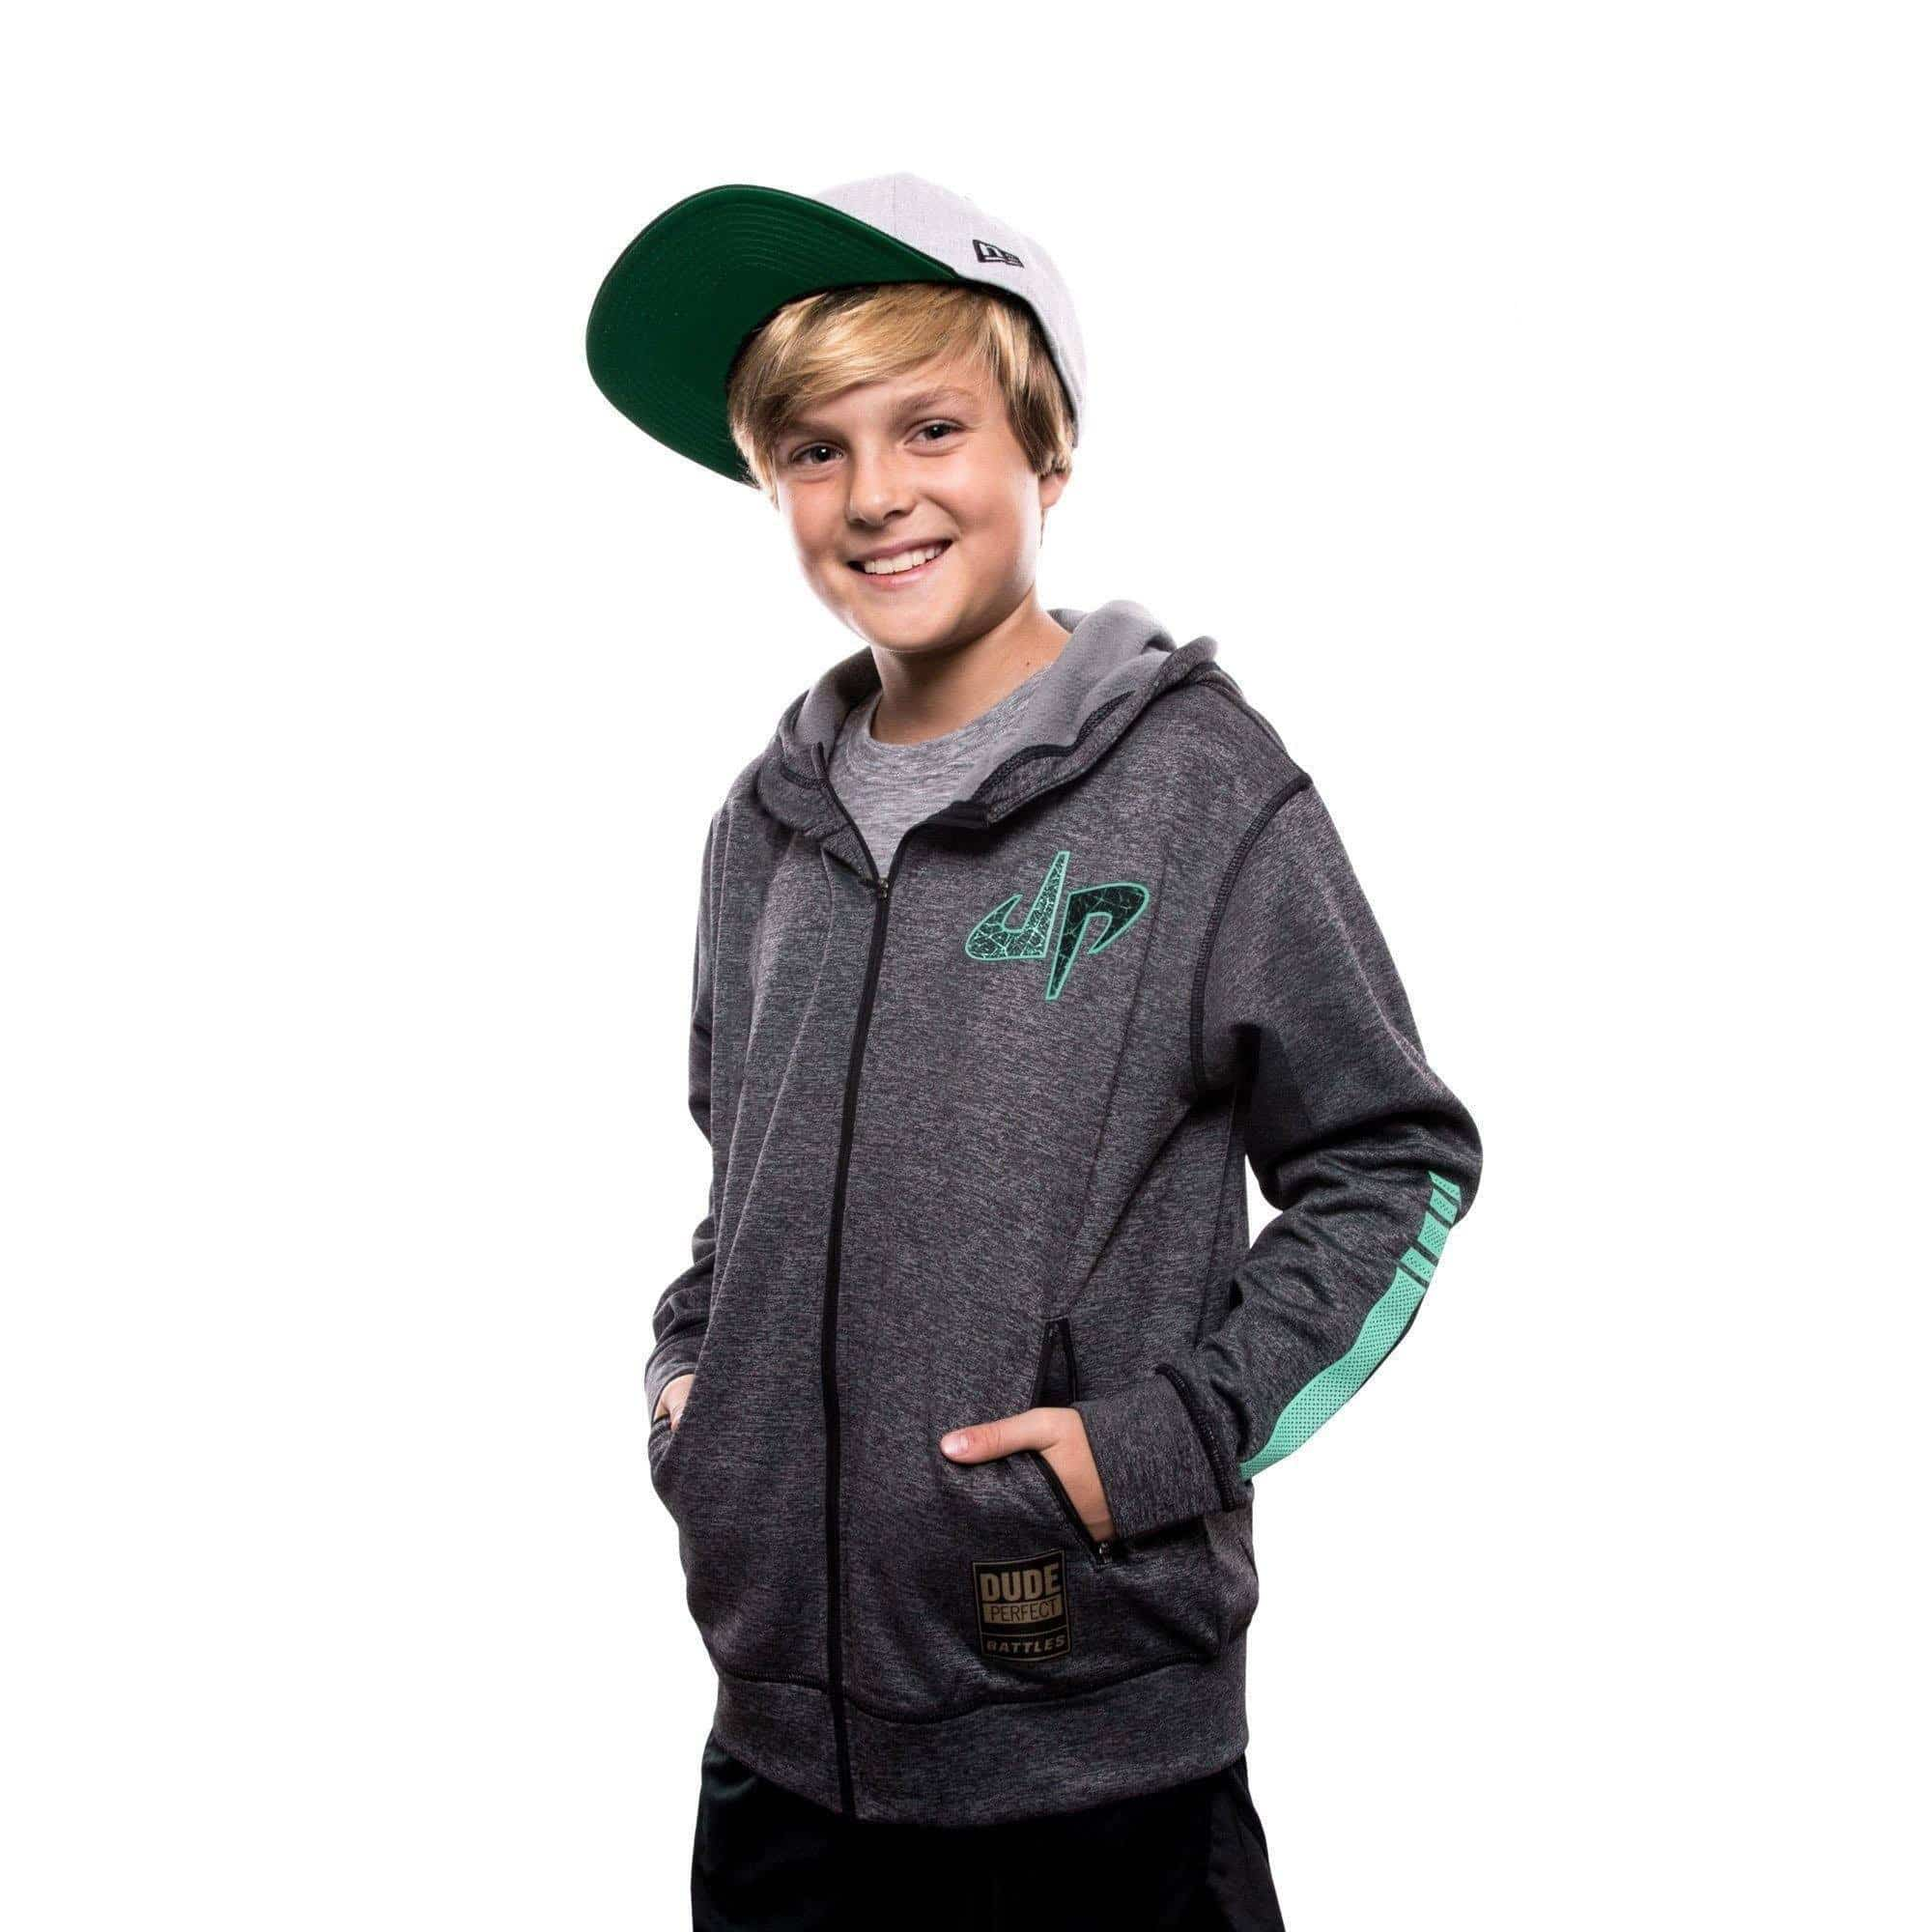 Youth Boys Girls Perfect-Dude Logo Hoodie and Sweatpants Pullover Suit 2 Piece Outfit Sweatshirt Set